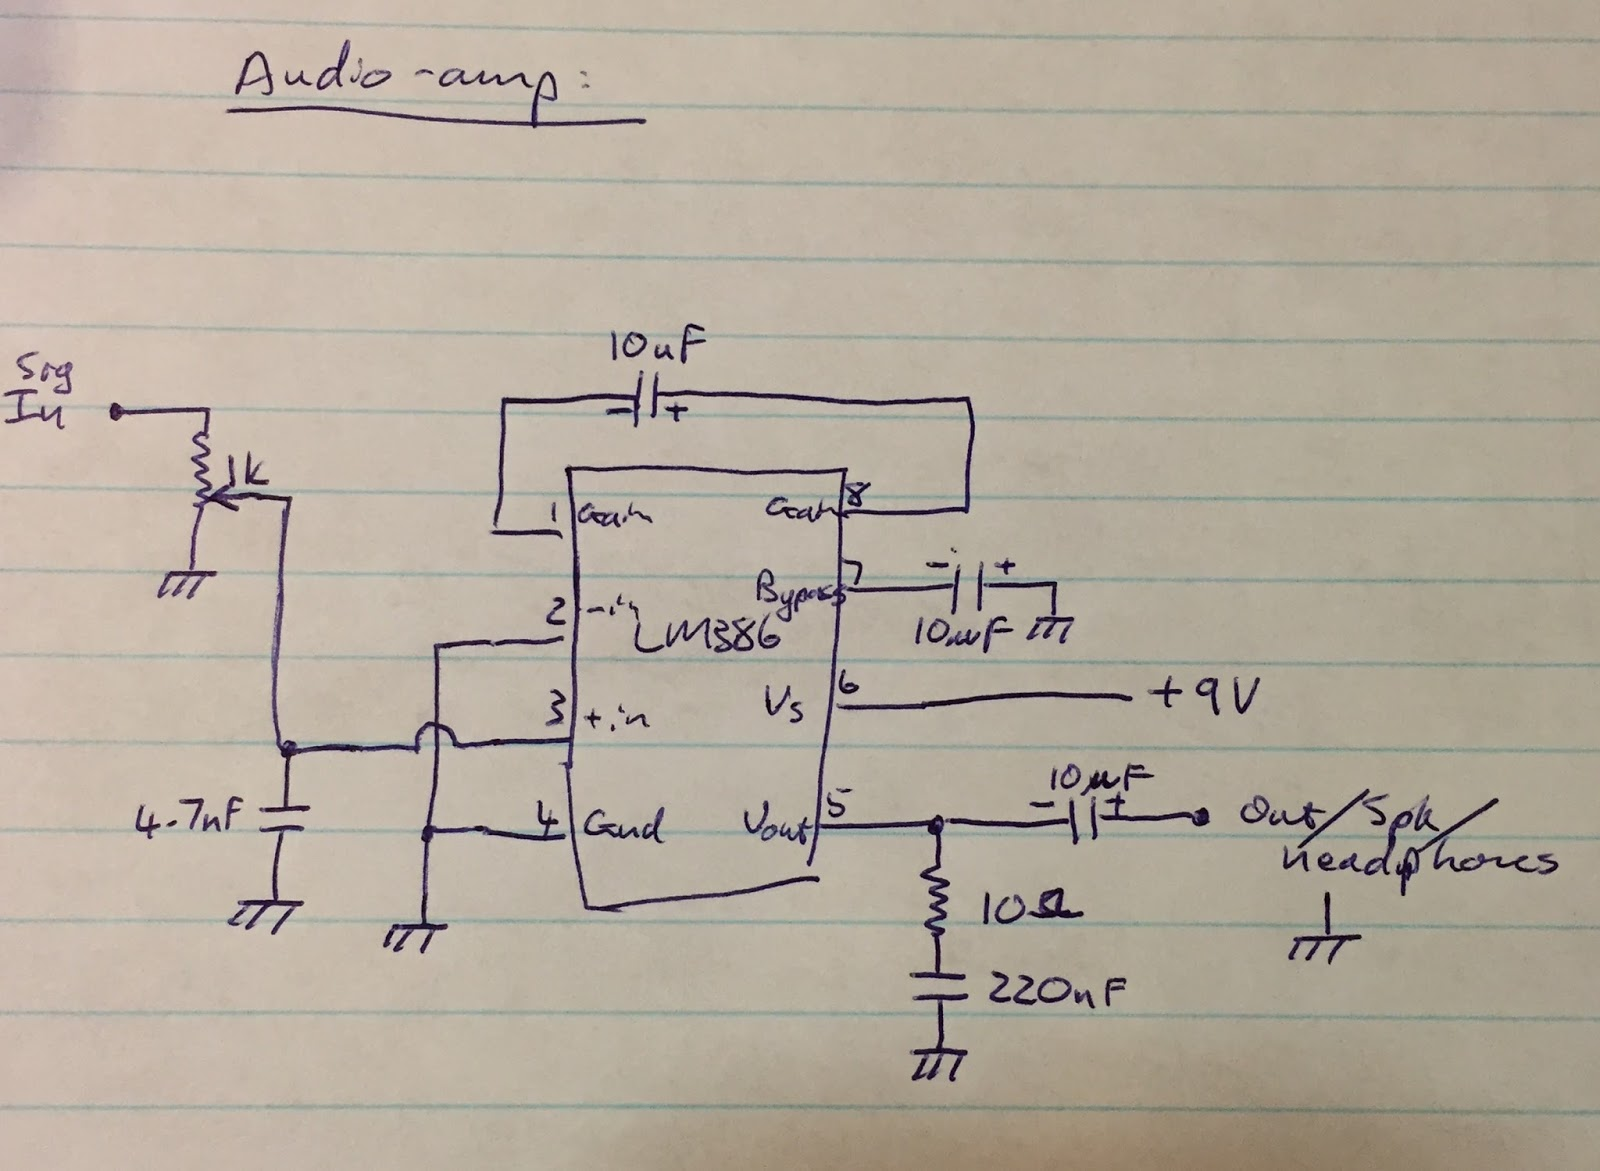 Zs6svj Re Need A Simple Low Power Preamp Circuit For Electret Microphone I Made An Input Each And They Can All Go Straight Into The Main Audio Amplifier Like So